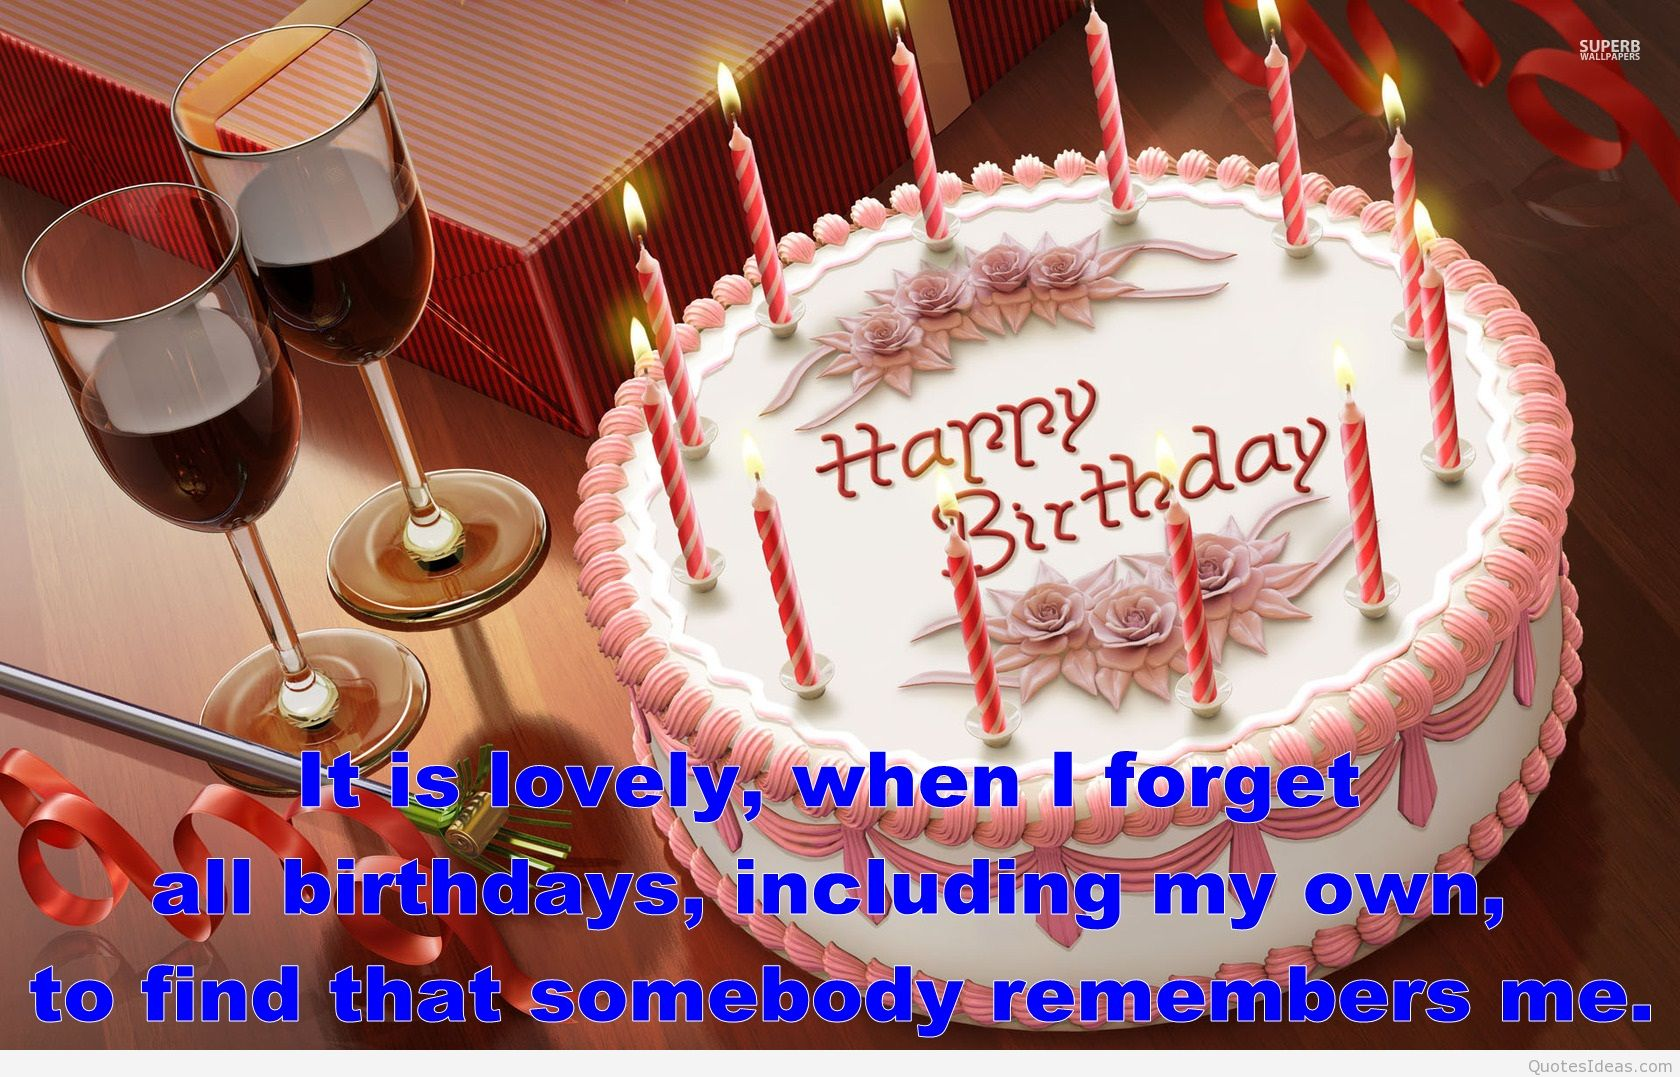 happy birthday quotes for brother with cake